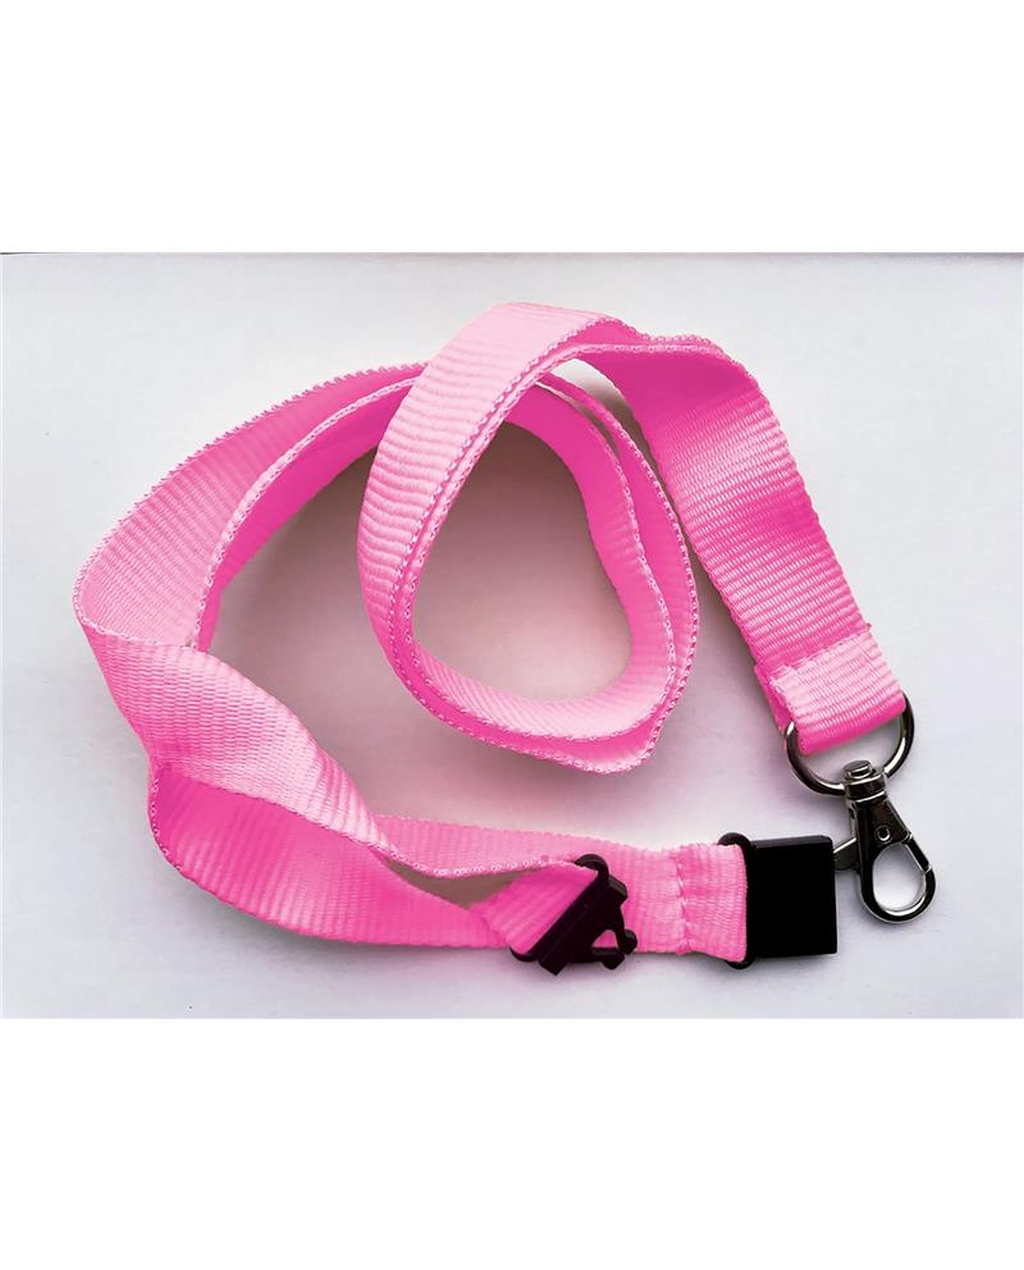 20Mm Lanyards Plain Pink Pack Of 100